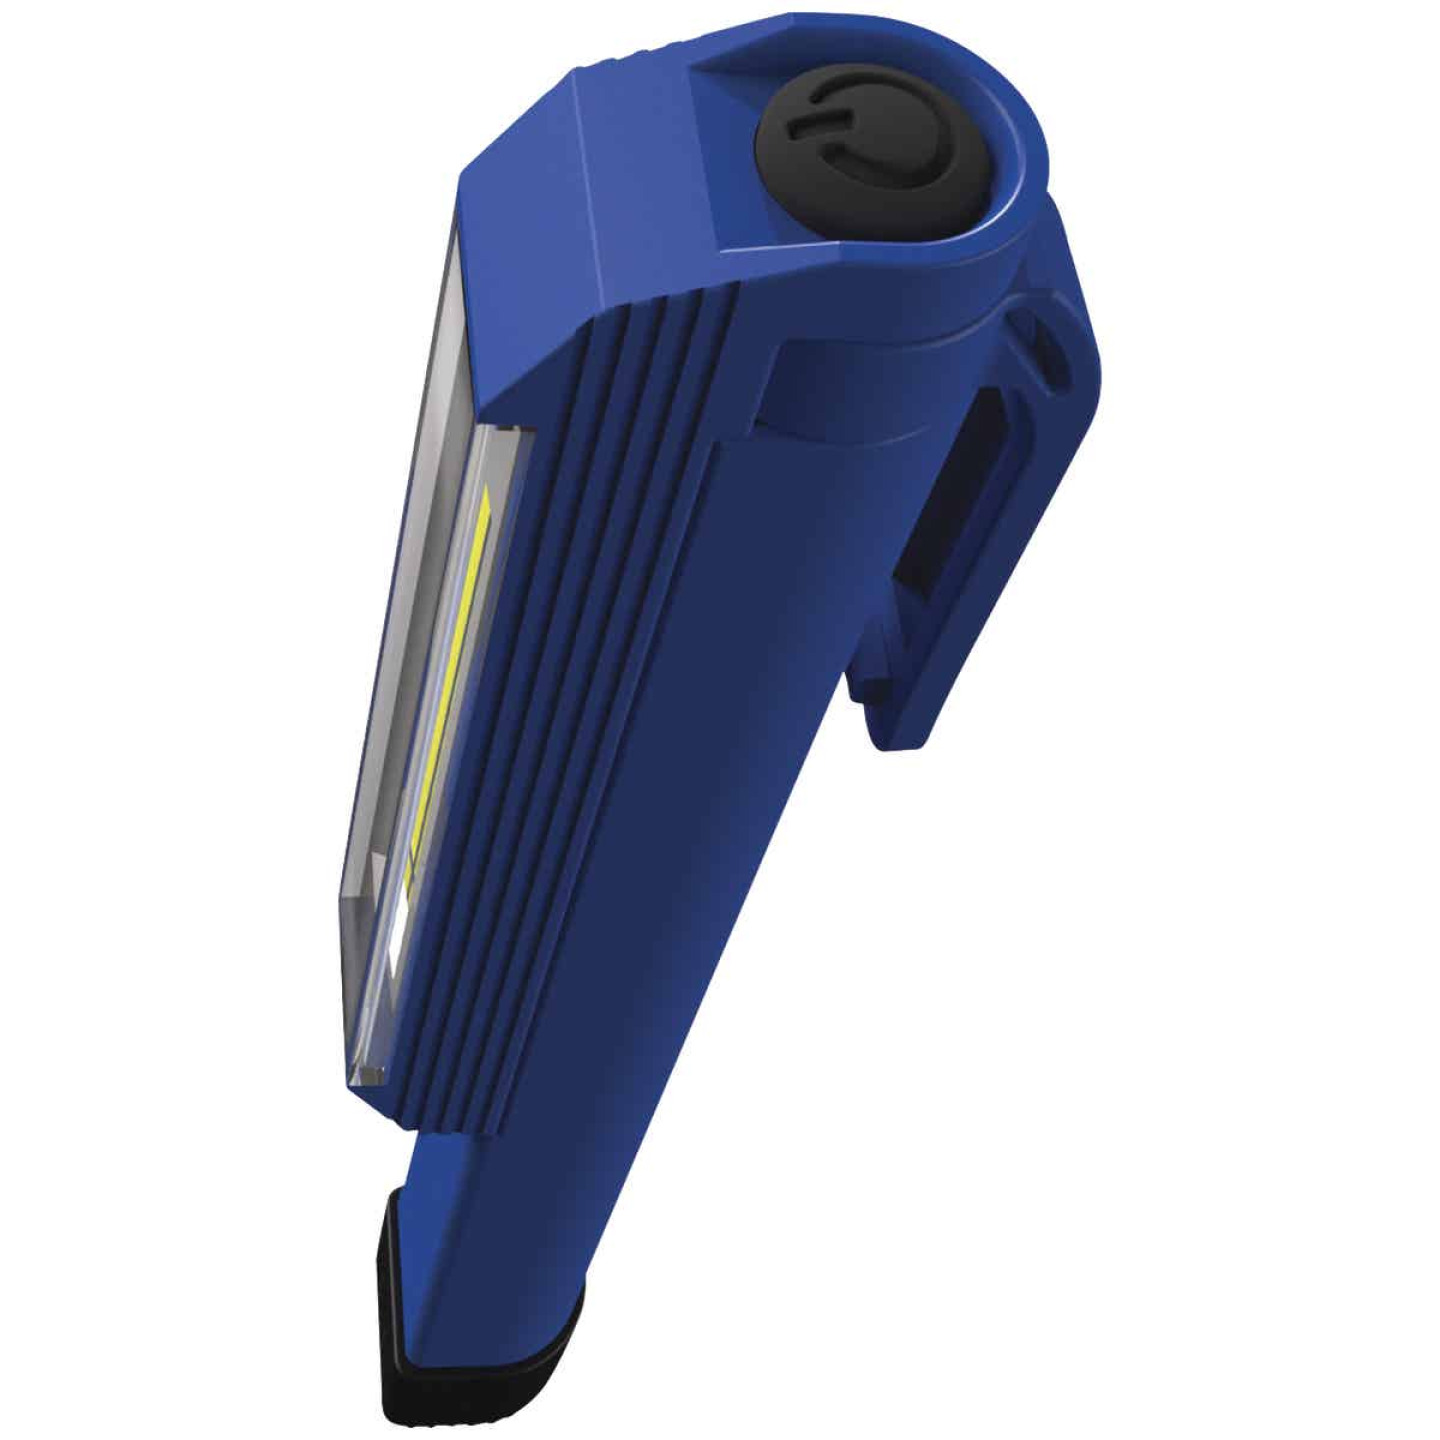 Nebo Larry 170 Lm. COB LED Flashlight, Blue Image 3